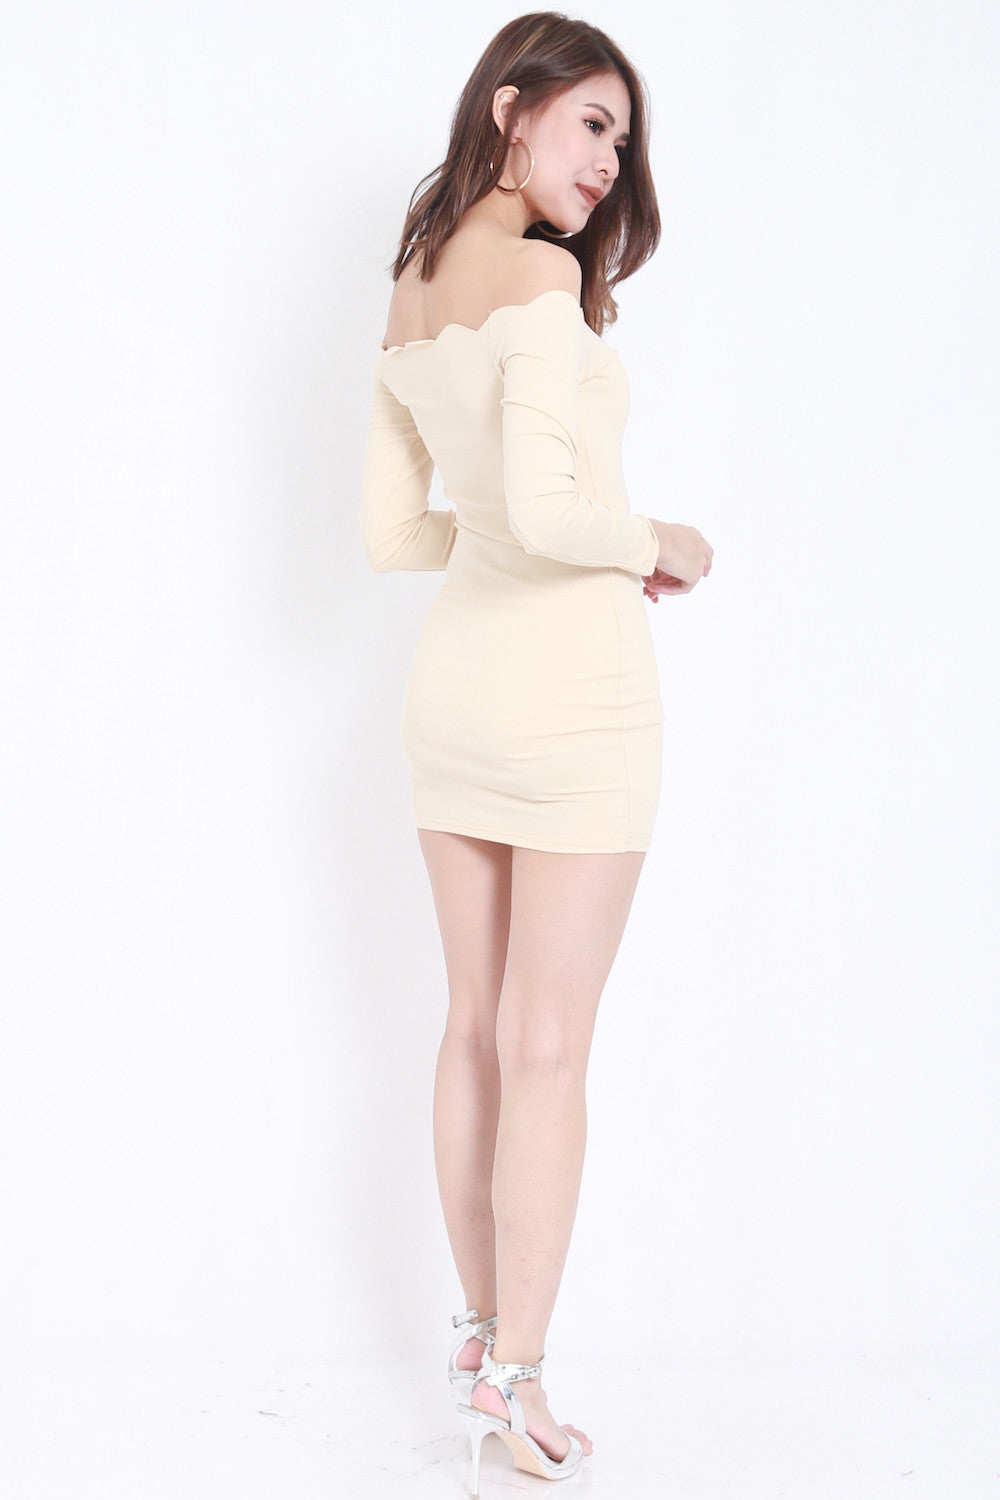 nude ls  LS Scallop Dress (Nude)